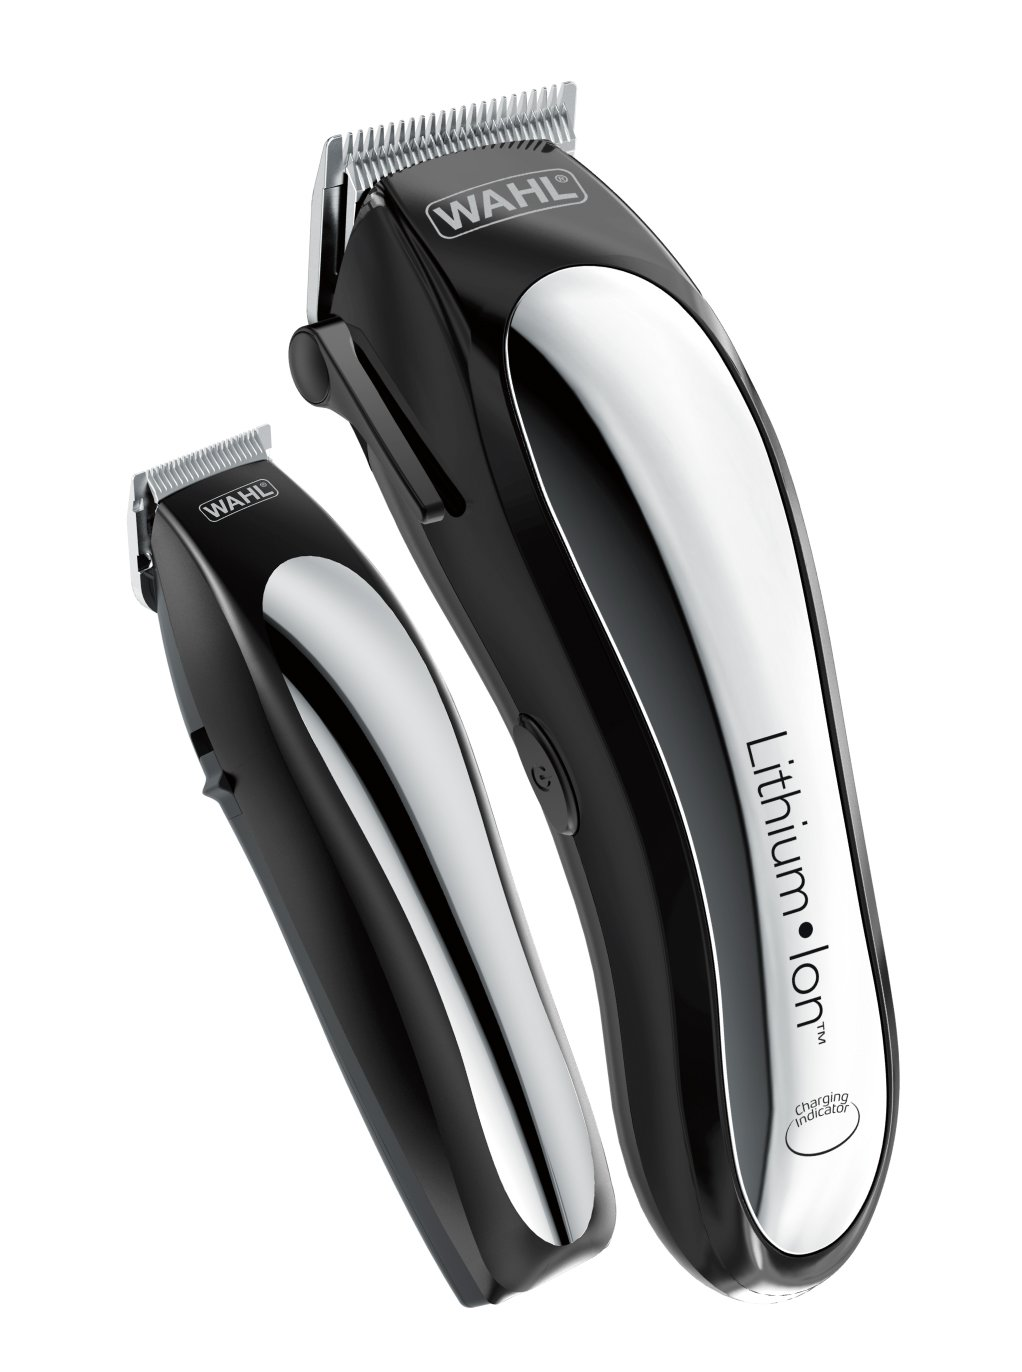 5 Best Hair Clippers For Men, Reviews & Buyers Guide [May ...